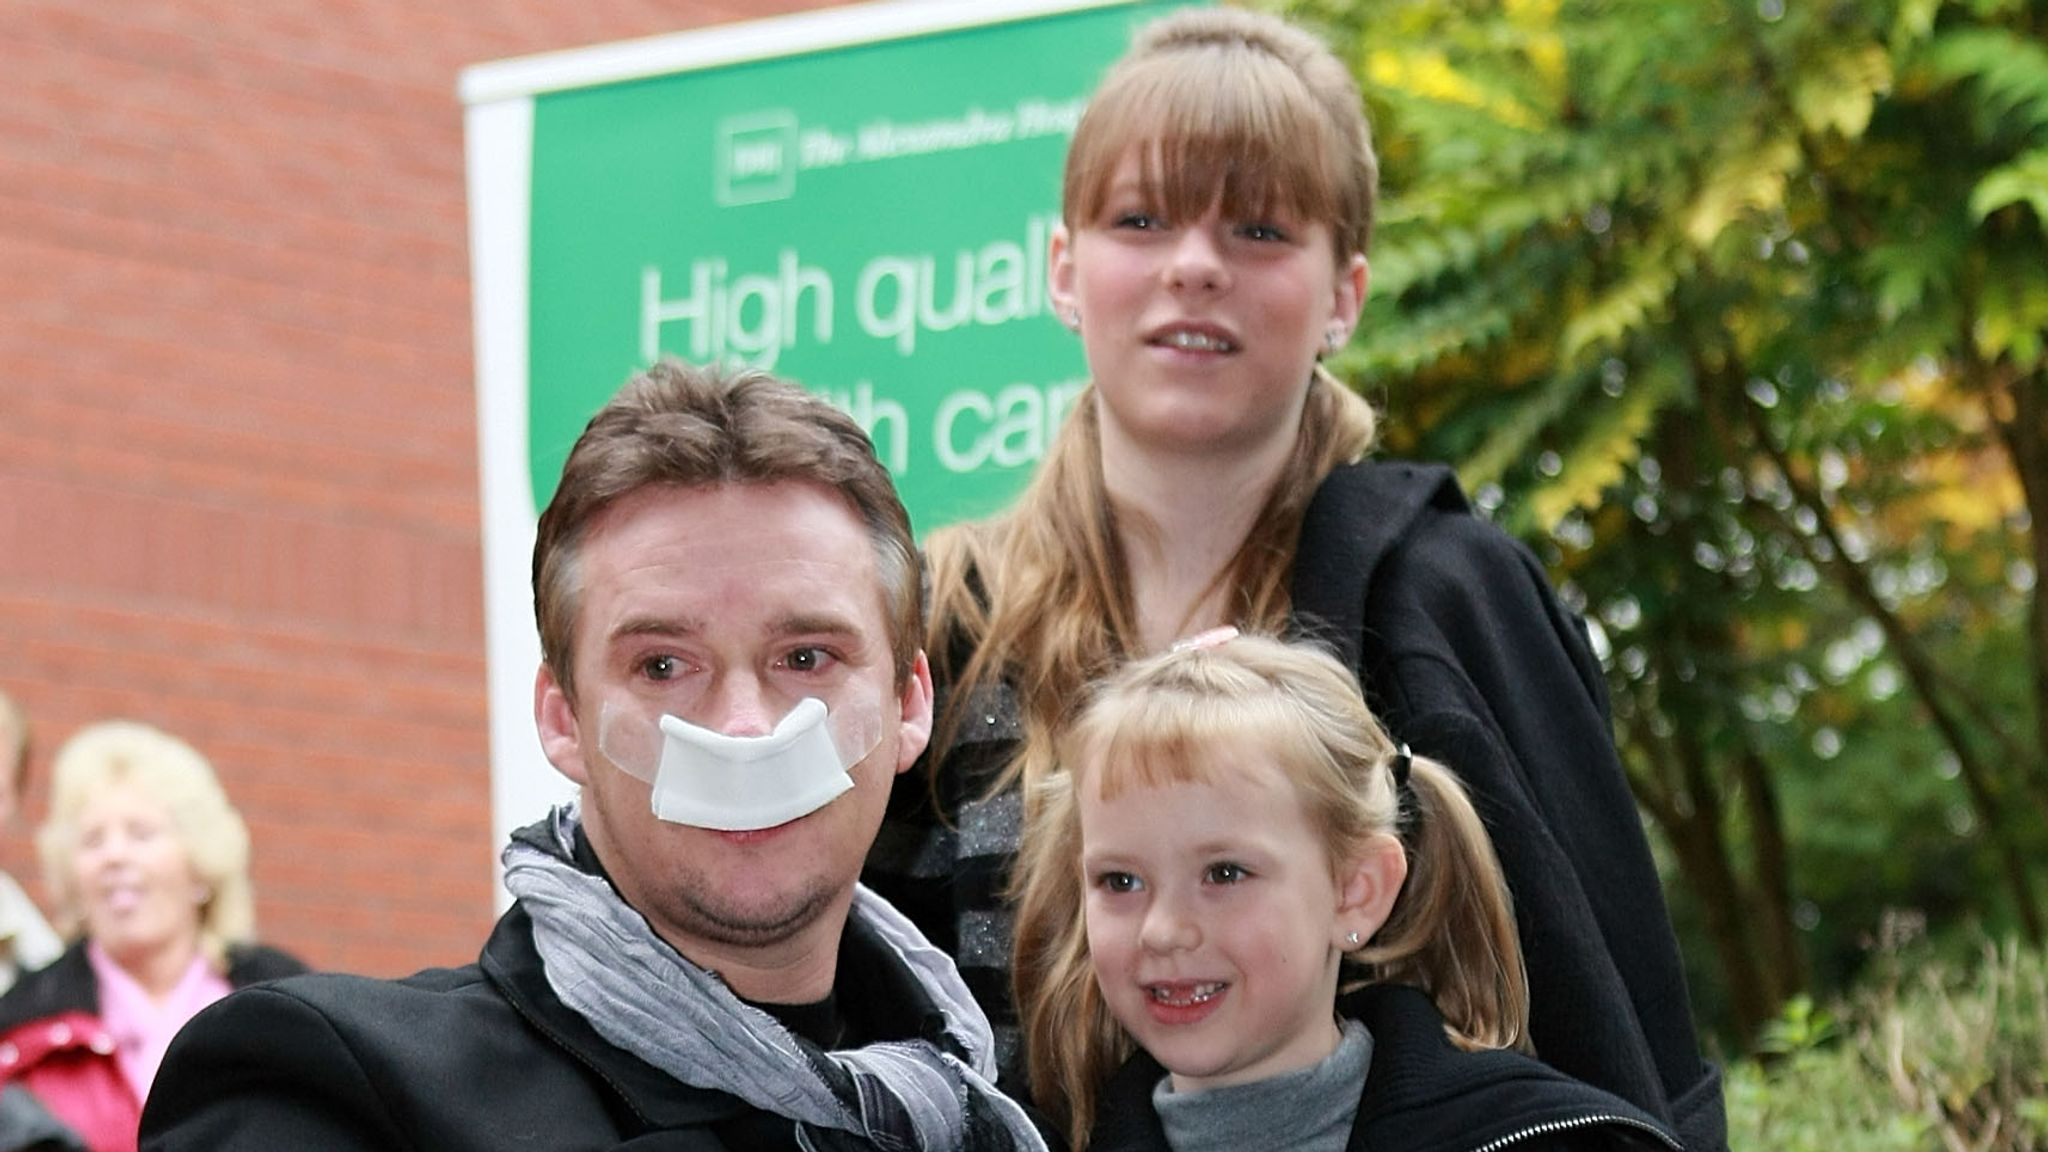 Watson leaves hospital with his two daughters in 2007